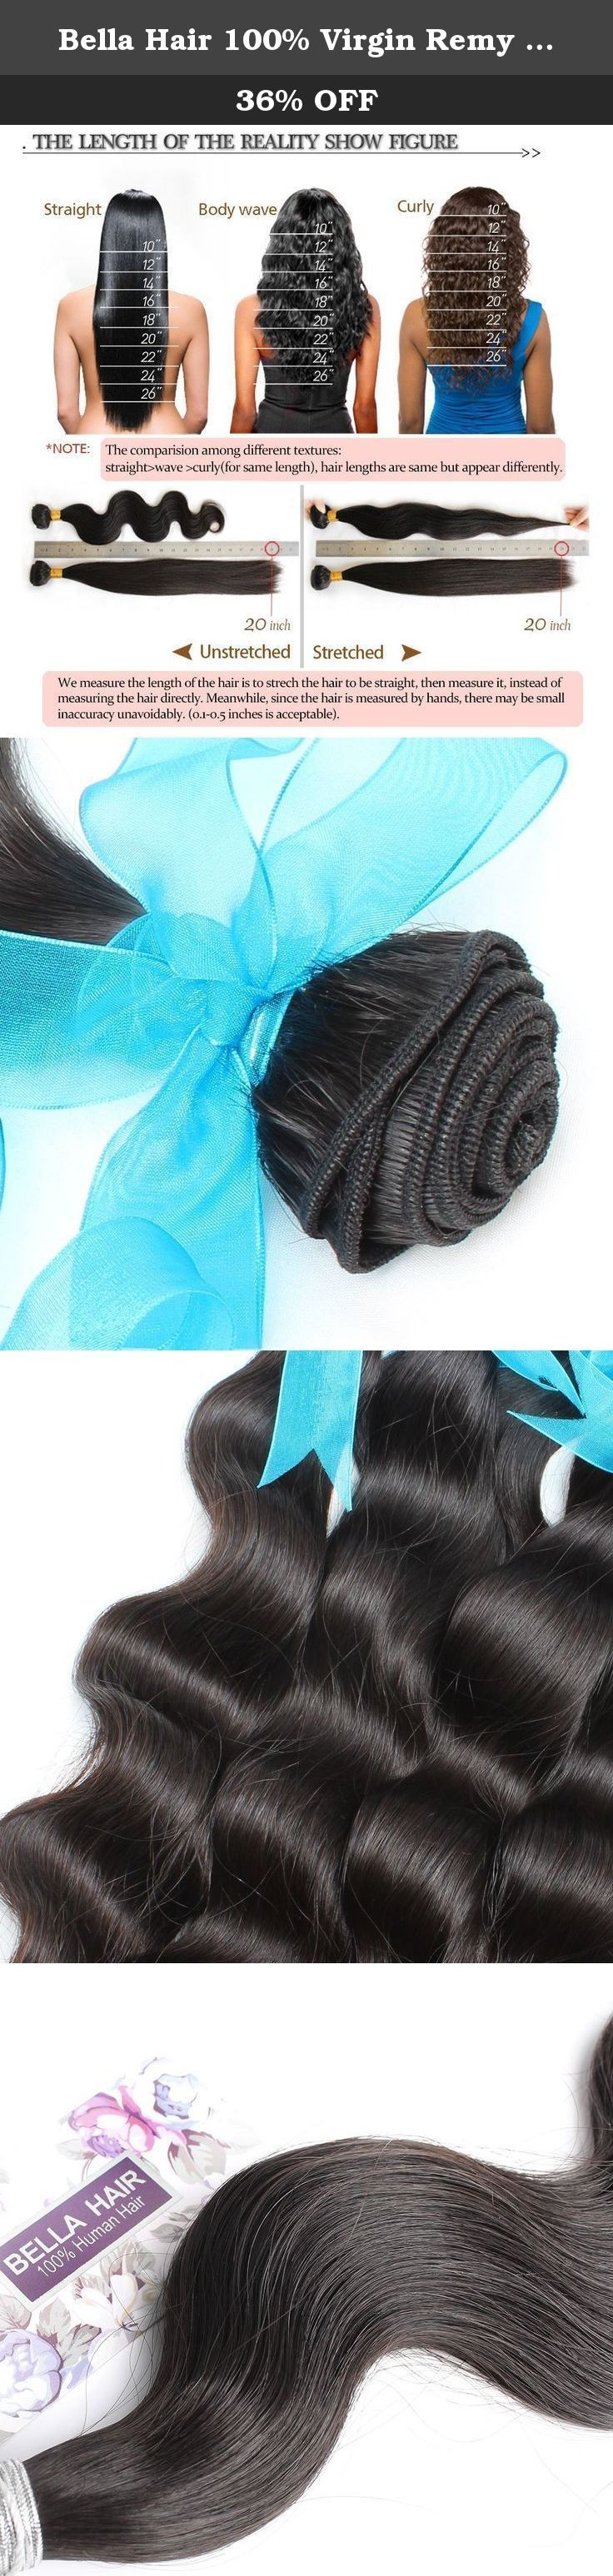 """Bella Hair 100% Virgin Remy Brazilian Hair Bundles Body Wave Weave Hair Extensions 1 Bundles 8""""-30"""" Natural Color (28""""). Brazilian Virgin Hair Bundles 1) Material: 100% Brazilian virgin human hair , unprocessed natural hair with no chemical process, No Acid! No Dye! 100% Real Human Hair. 2) Quality: Grade AAAAA, No shedding, No tangle, No lice, intact cuticle, long lifetime 3) Length: 28 inch 100% ture to the length 4) Color: Natural Black Color (can be dyed or bleached) 5) Hair Type…"""